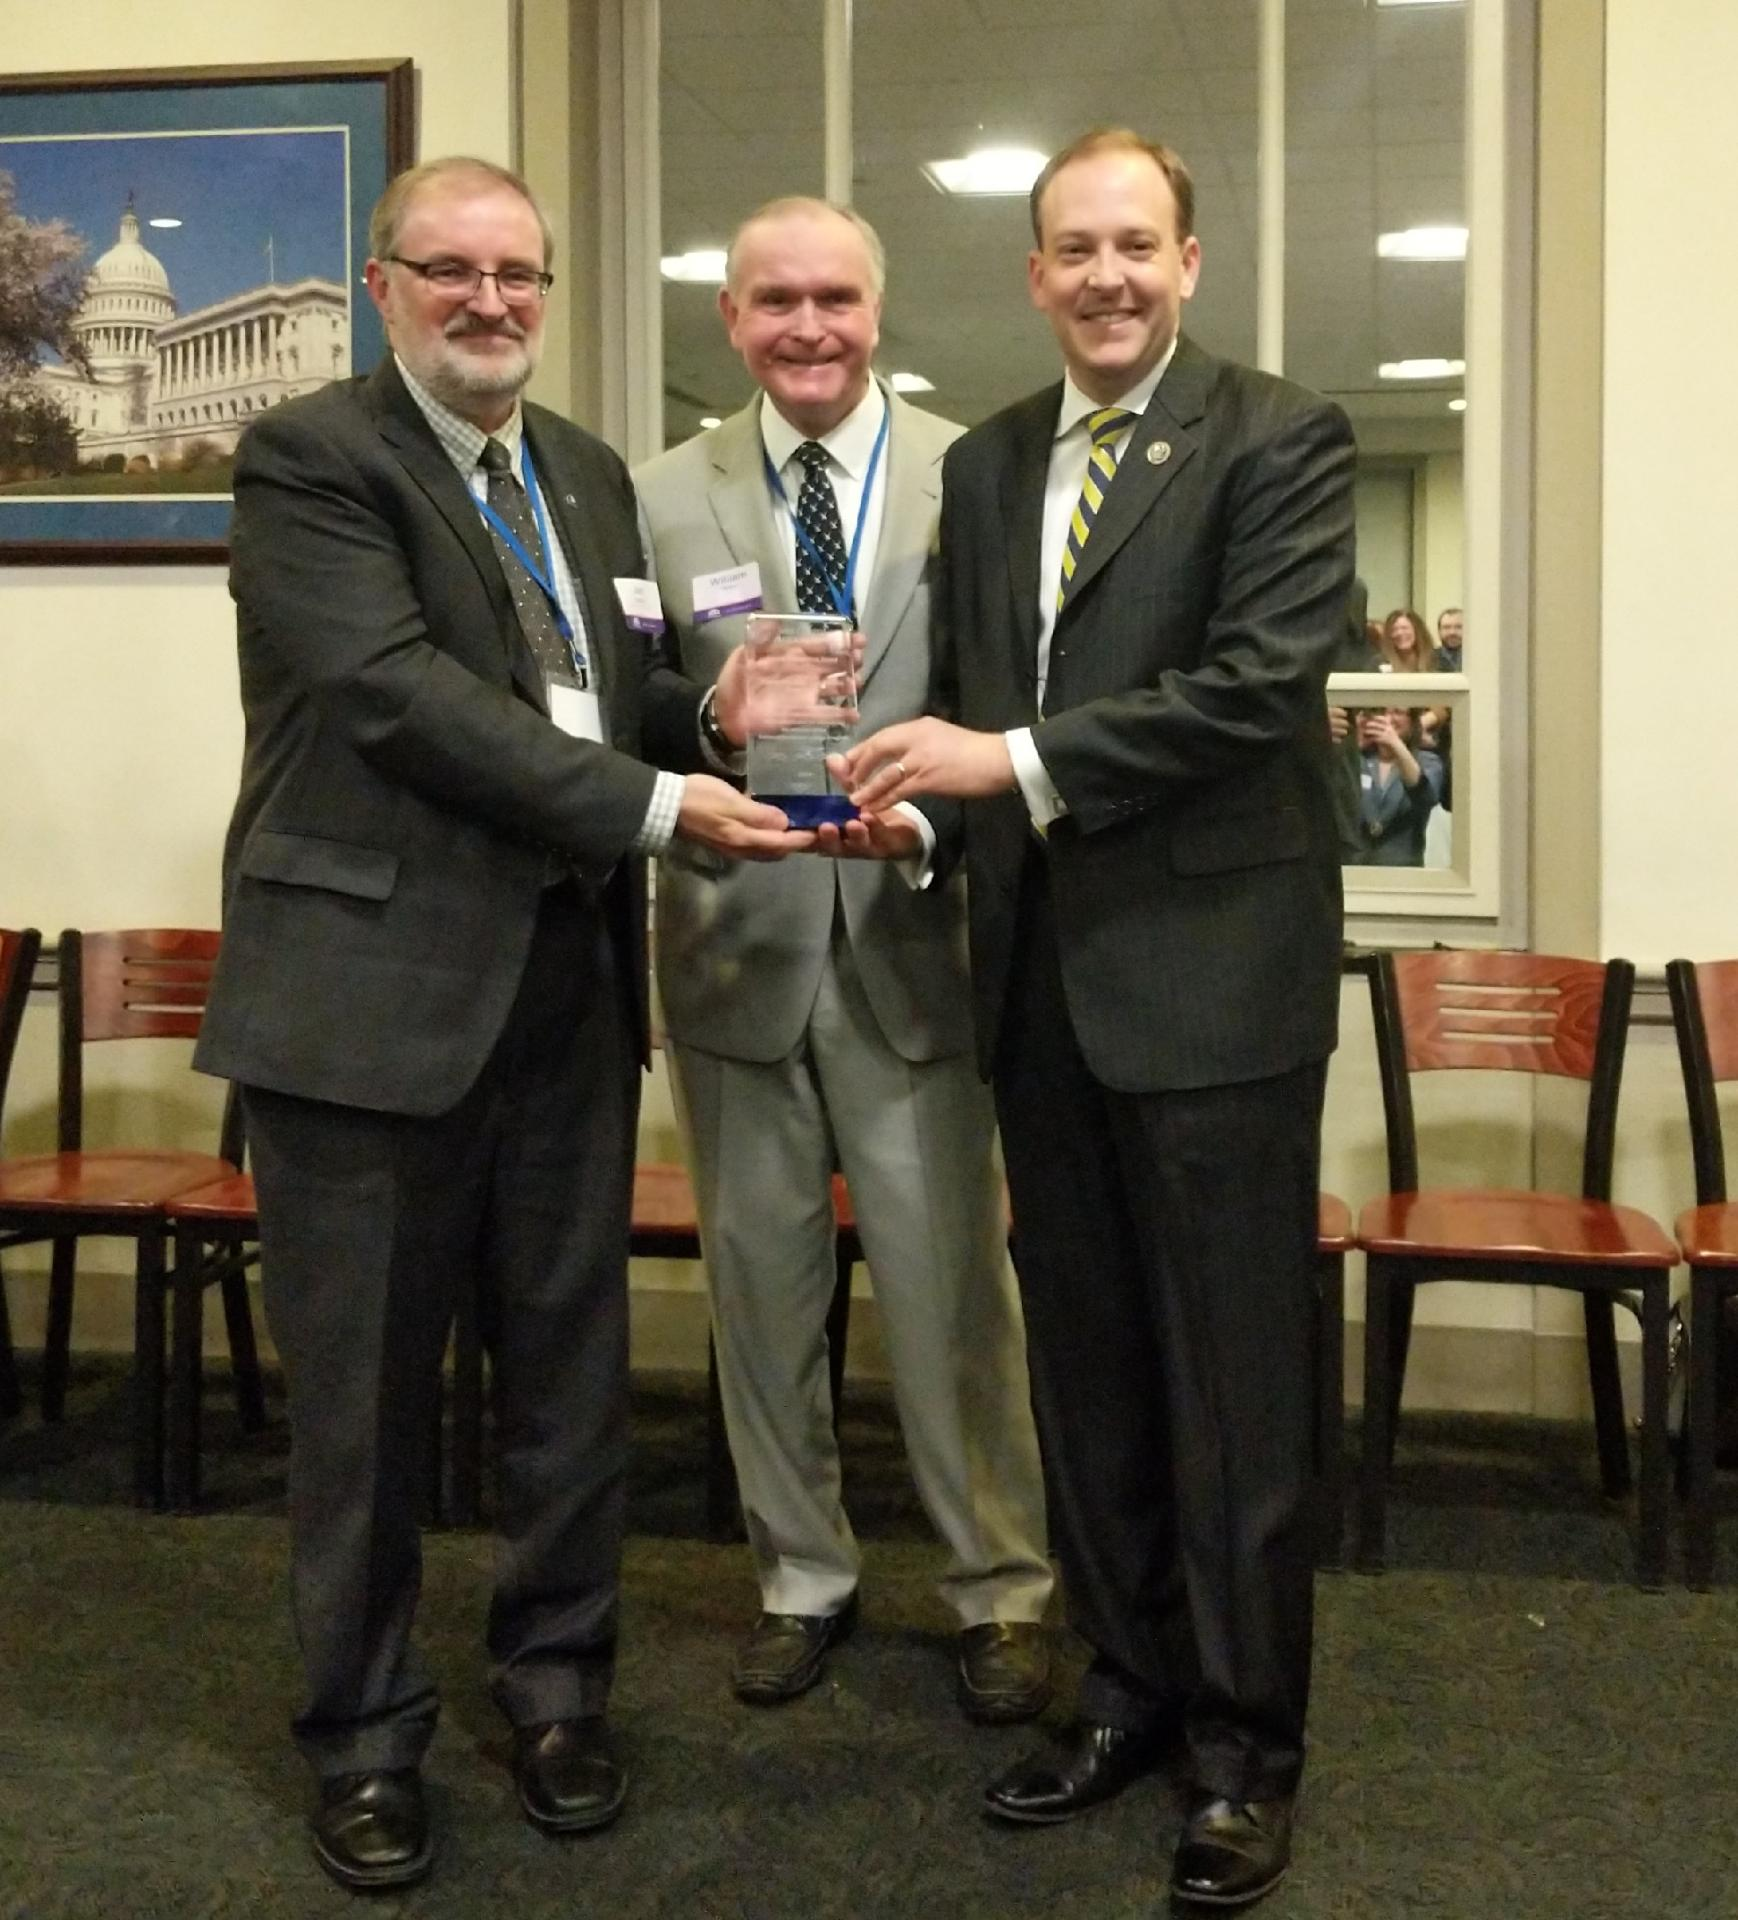 Congressman Lee Zeldin (right) receives the award from NYSG Director Bill Wise (center) and Wisconsin Sea Grant Director Jim Hurley, who is also President of Sea Grant Association.